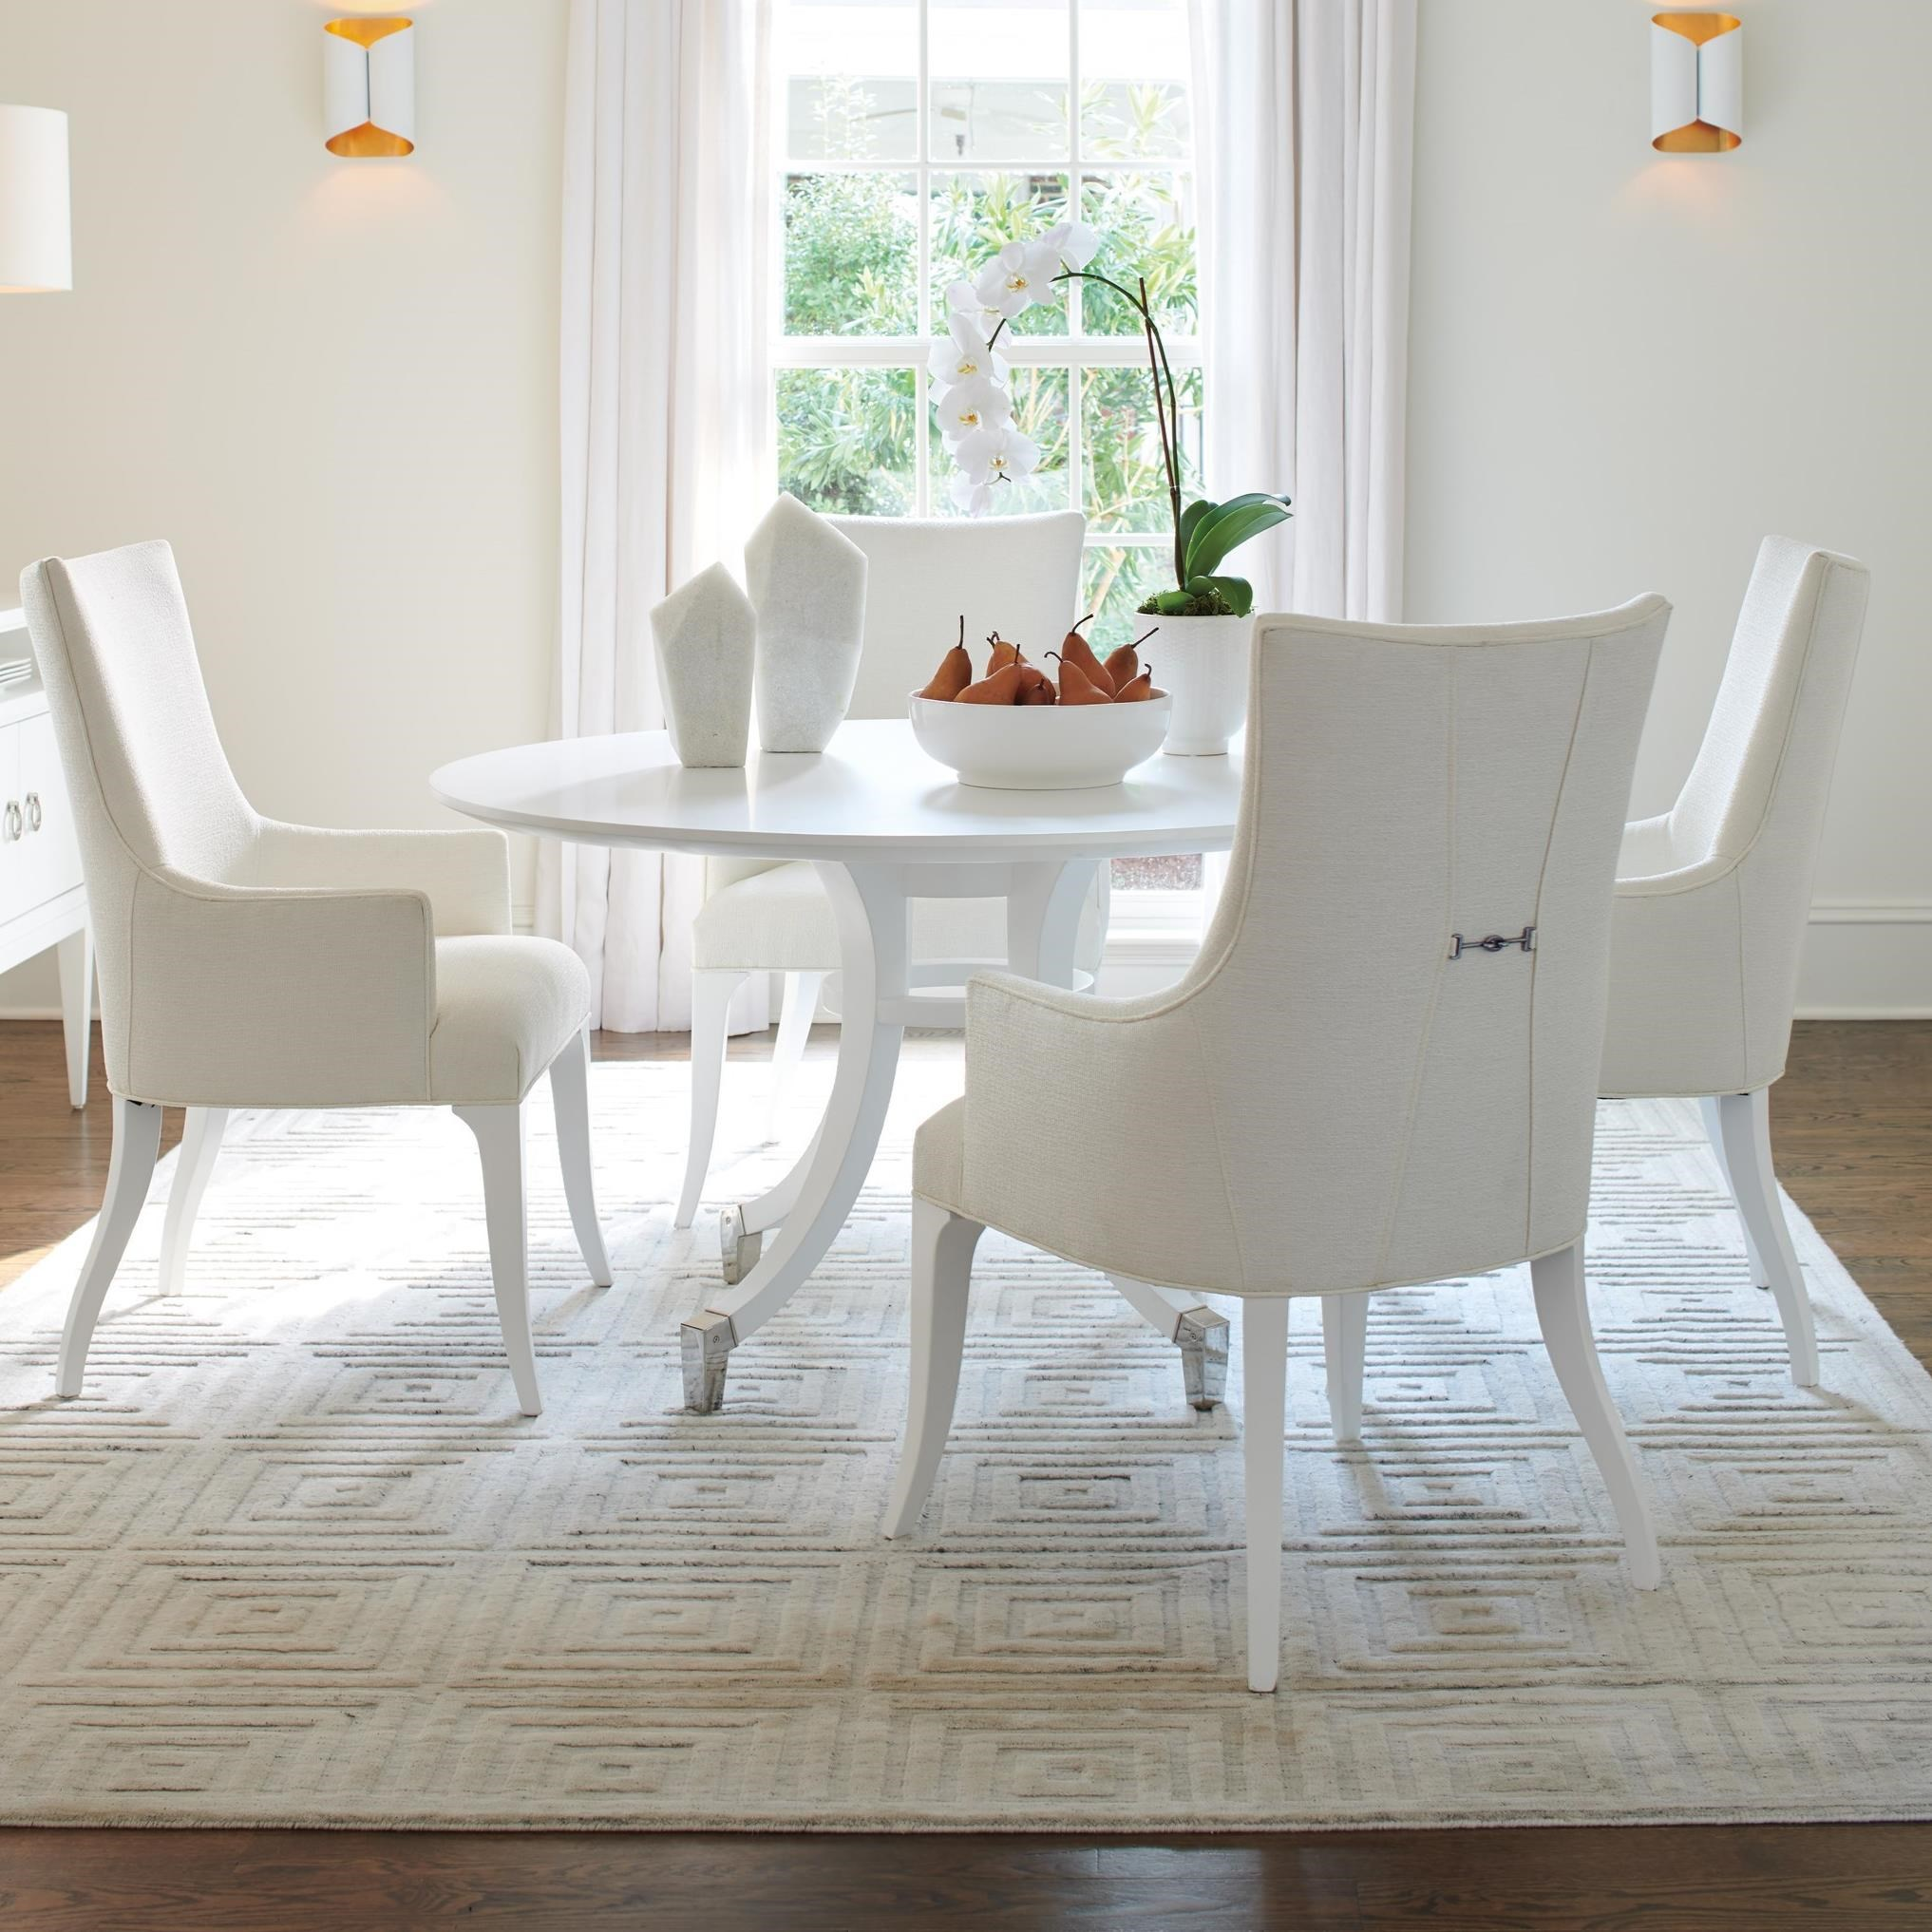 Avondale 5 Piece Dining Set by Lexington at Fisher Home Furnishings